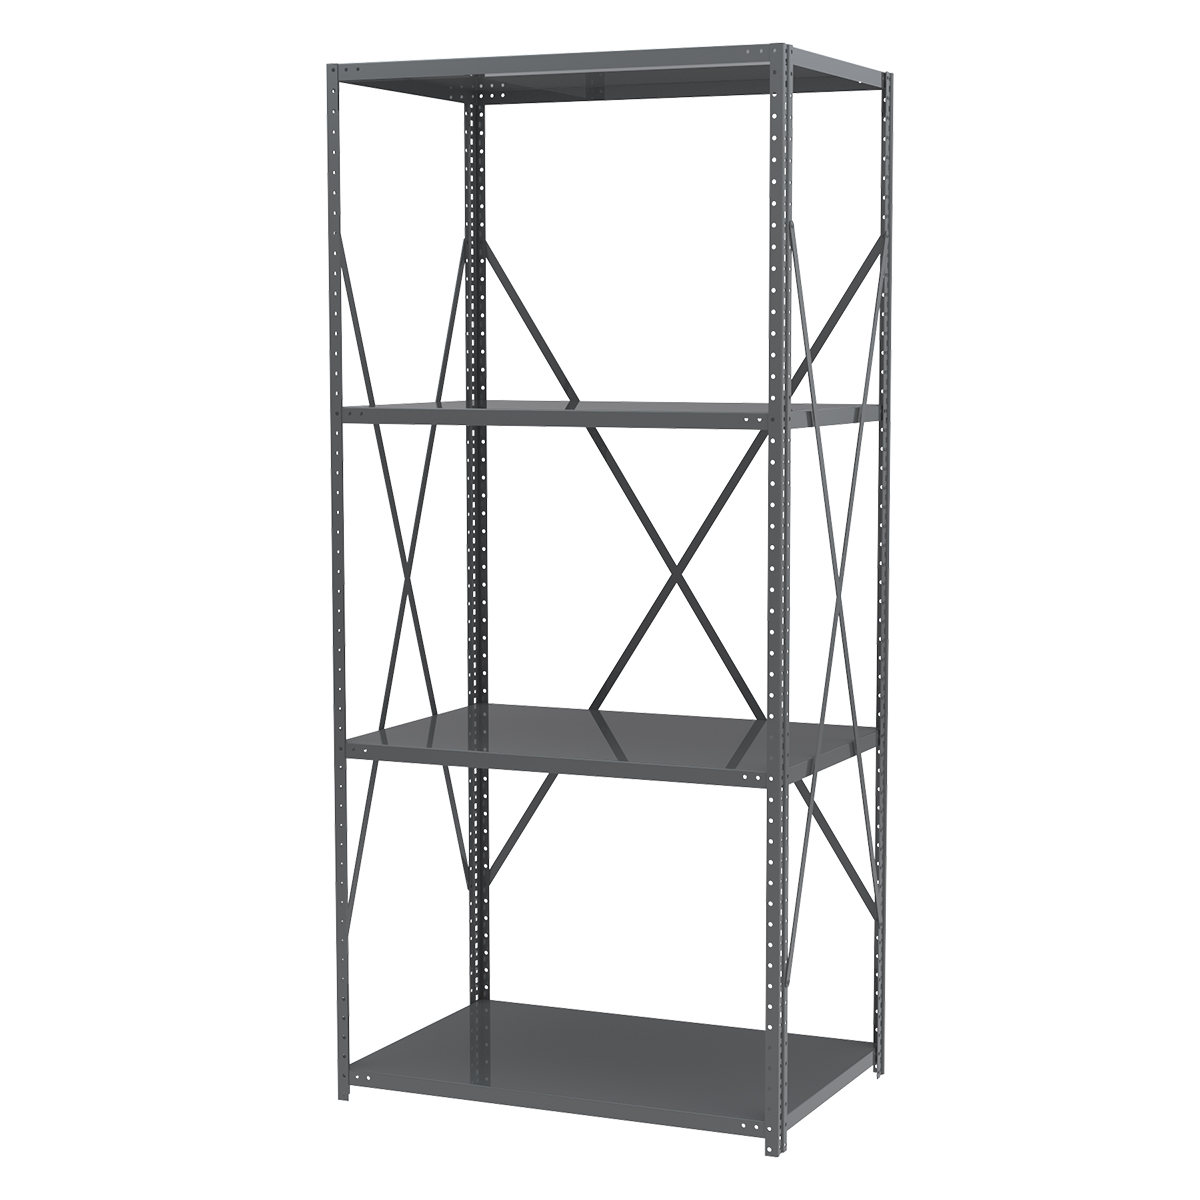 Steel Shelving Kit, 24x36x79, No Bins, Gray (AS2479).  This item sold in carton quantities of 1.